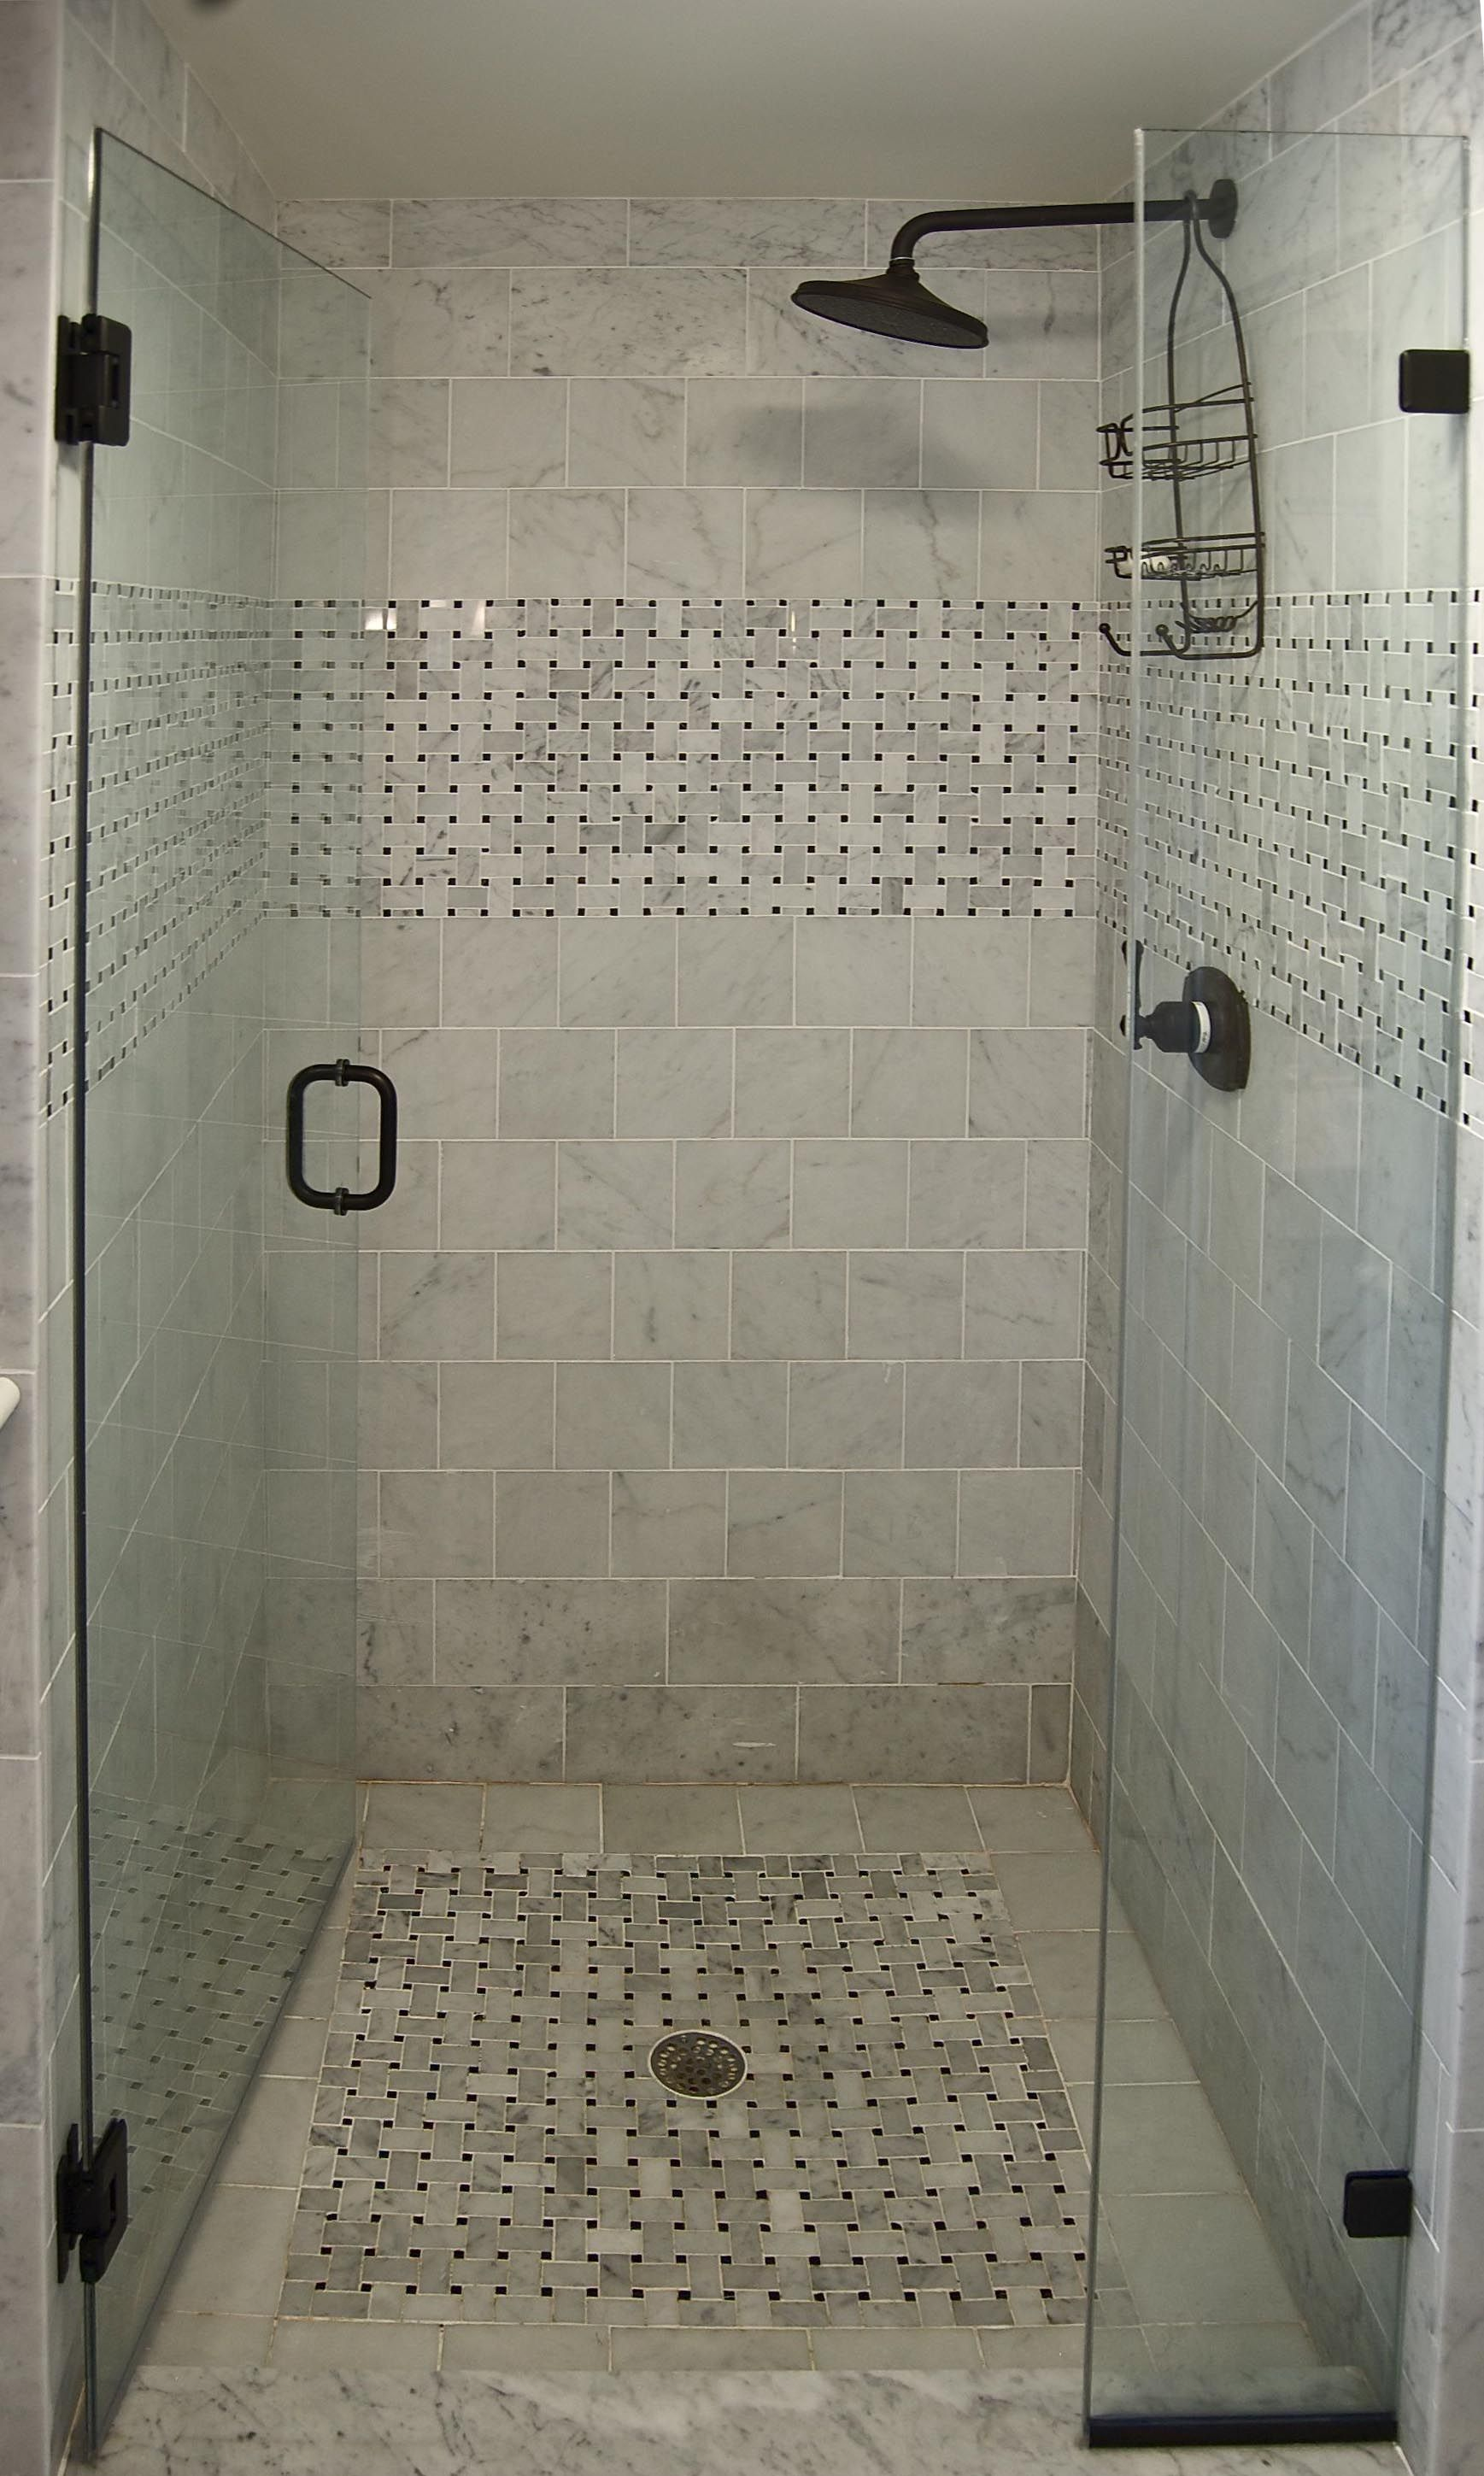 Small Shower Basket Weave Strip Rainshower Head Single Dial Control Bathroom Shower Stalls Bathroom Shower Tile Bathroom Remodel Shower